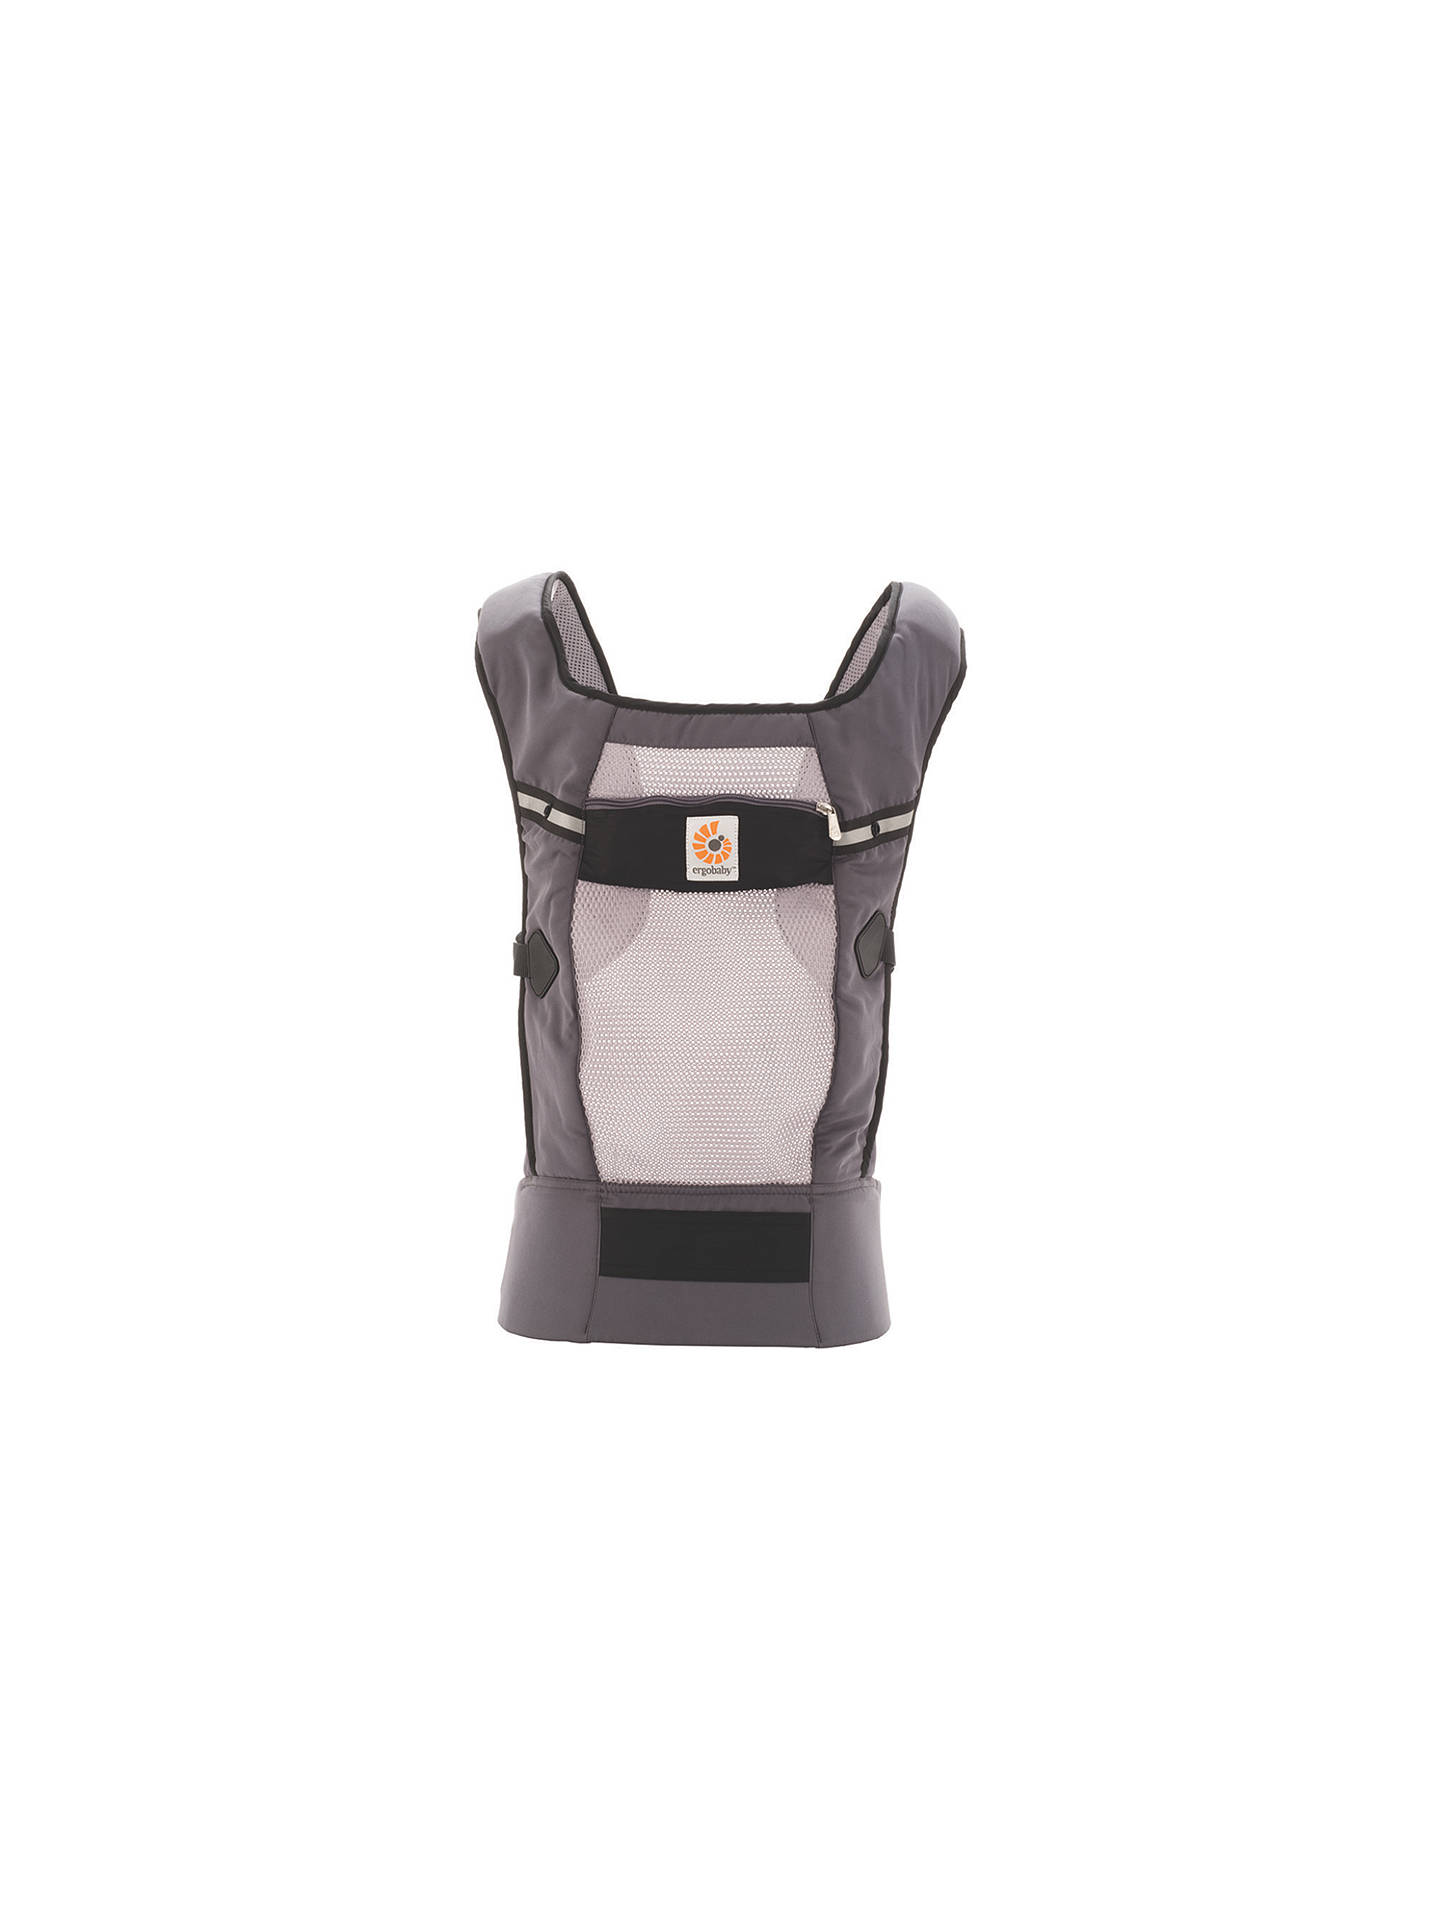 a52a0fcf552 ... Buy Ergobaby Performance Ventus Baby Carrier